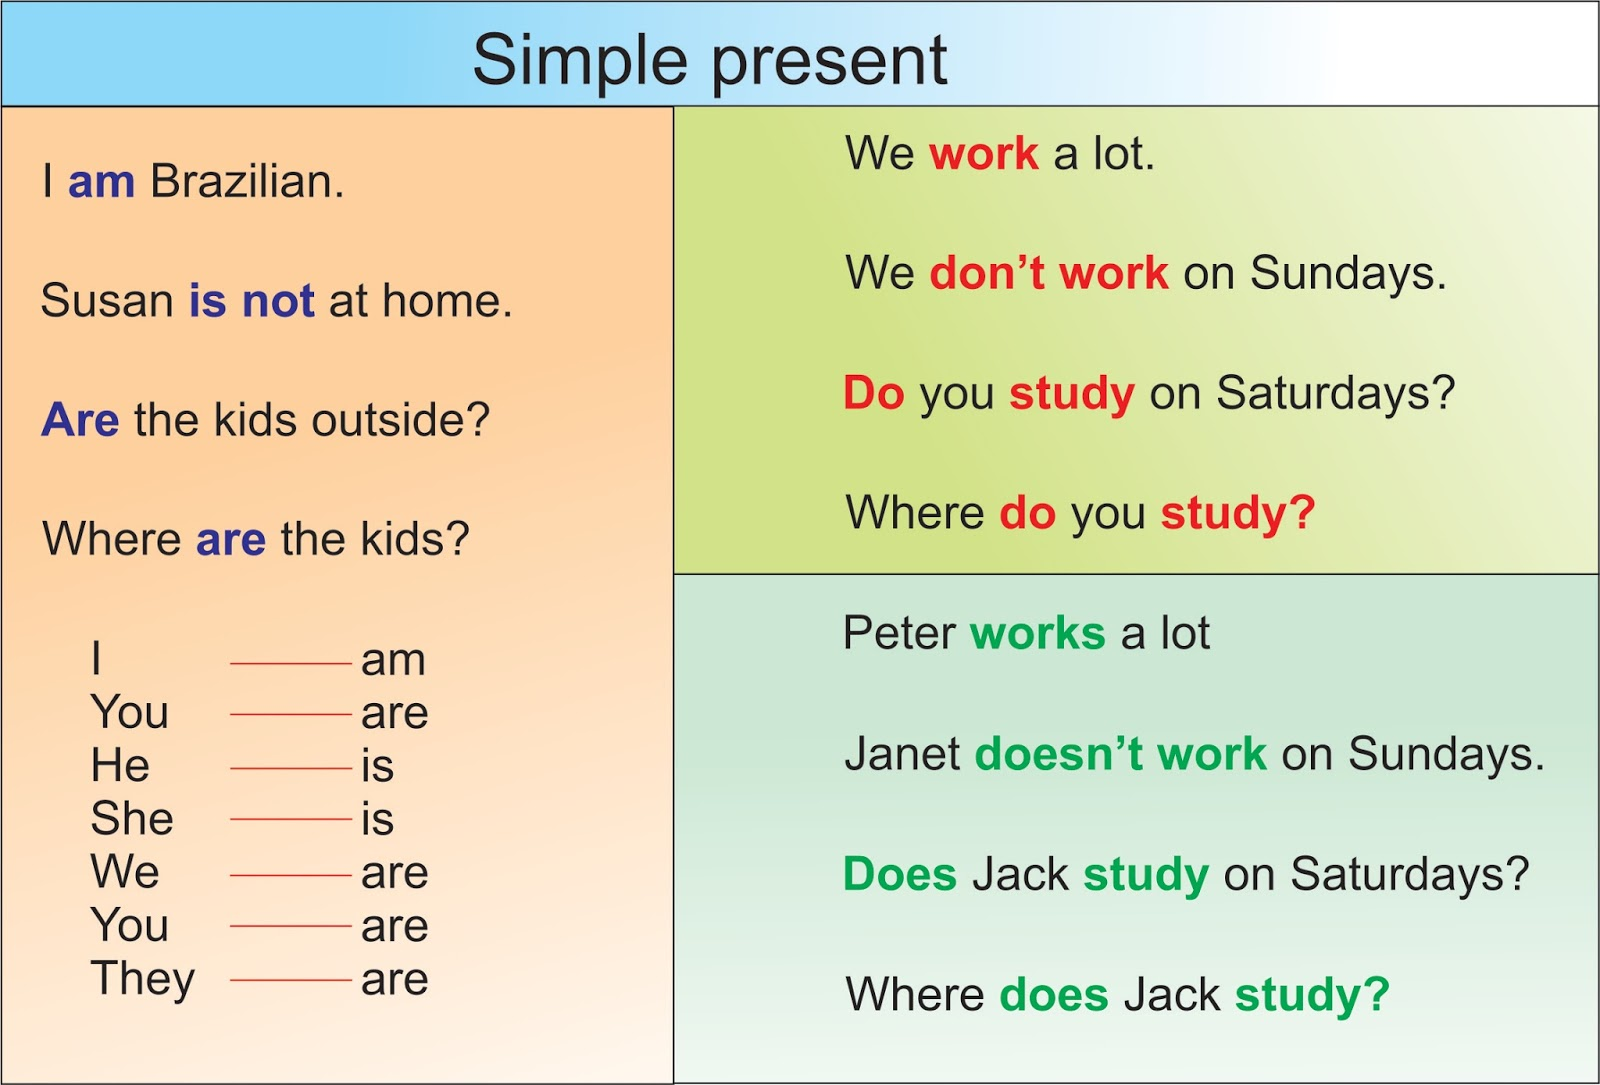 Simple Present Tense on 6 Simple Present Exercises